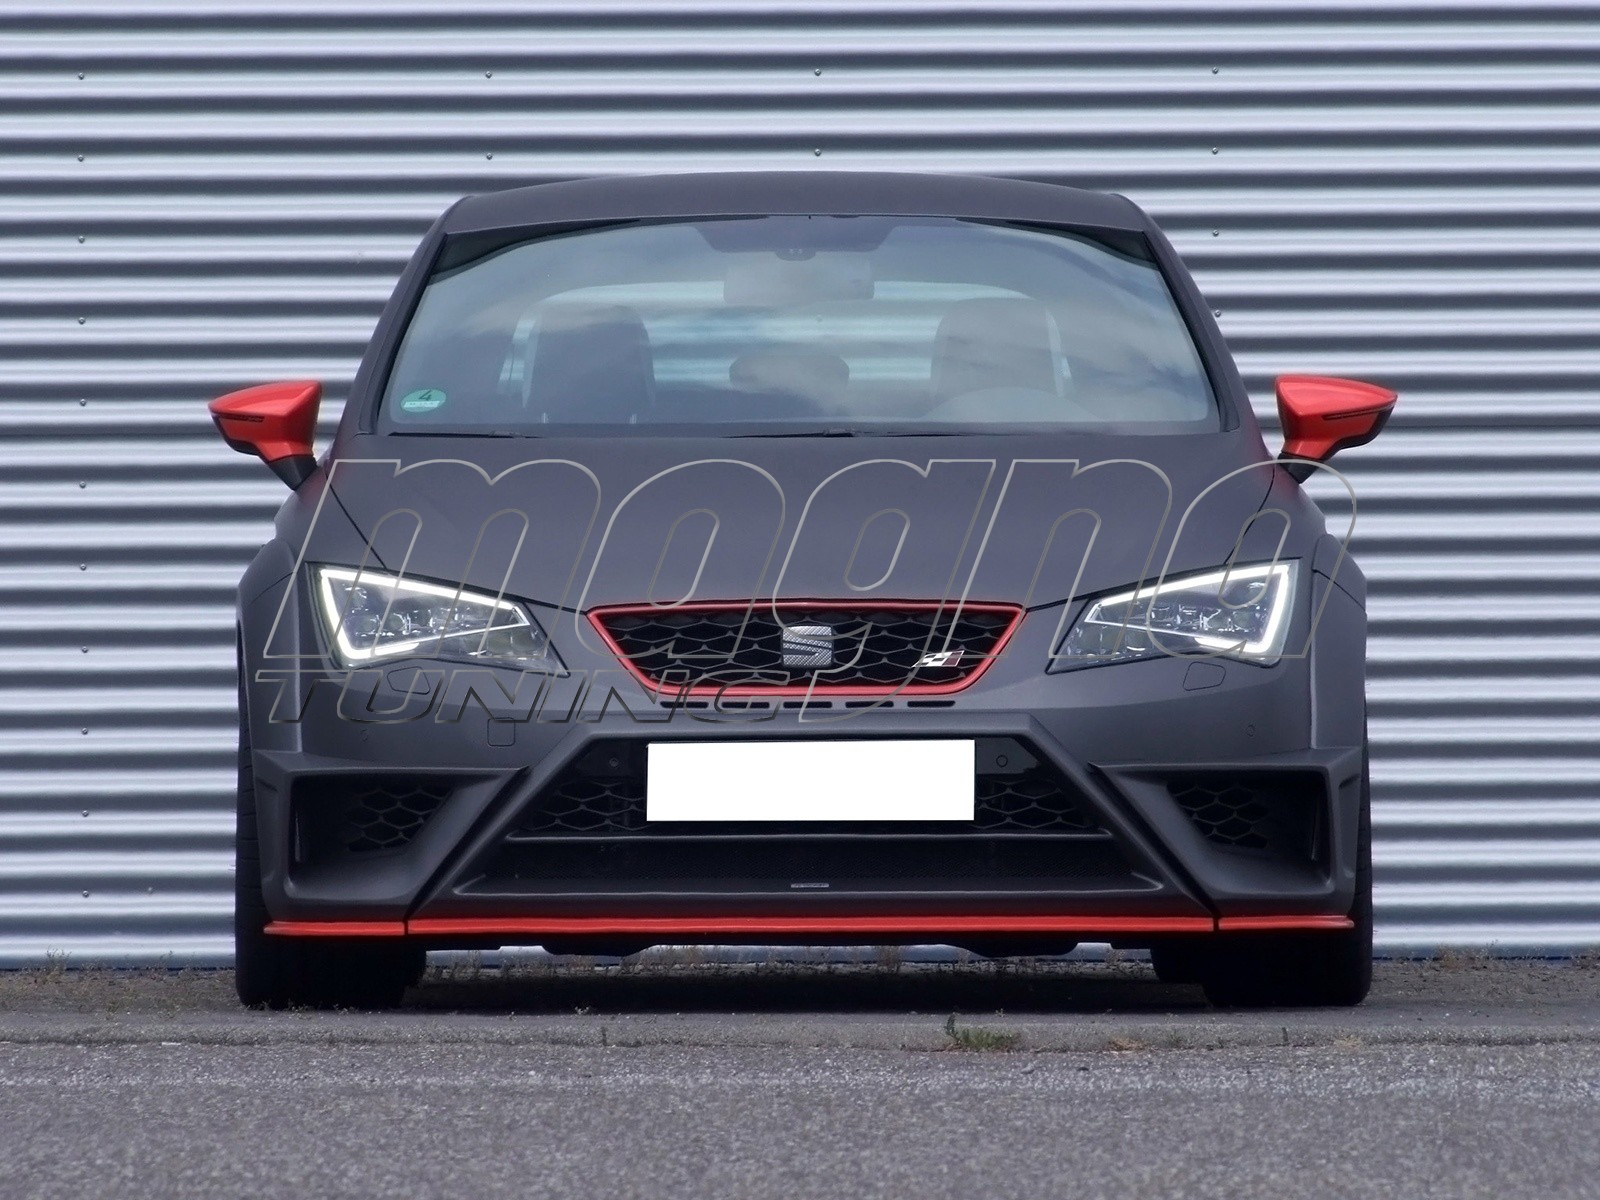 seat leon 5f sc fr cupra e2 wide body kit. Black Bedroom Furniture Sets. Home Design Ideas